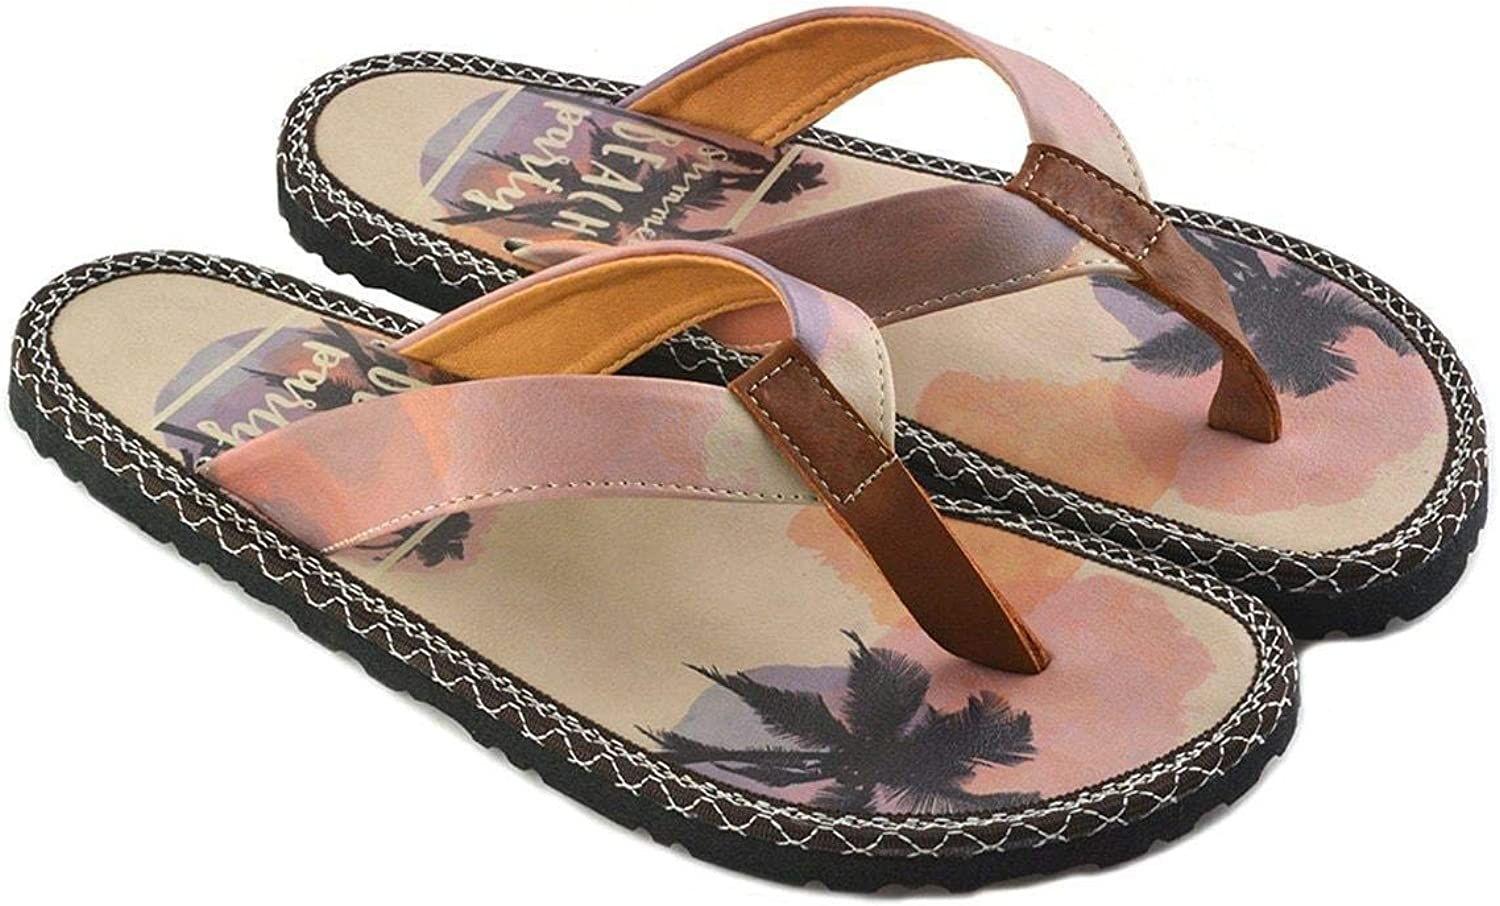 GOBY Women's shoes 'Beach Party Flip Flop Slippers 'CAL414'